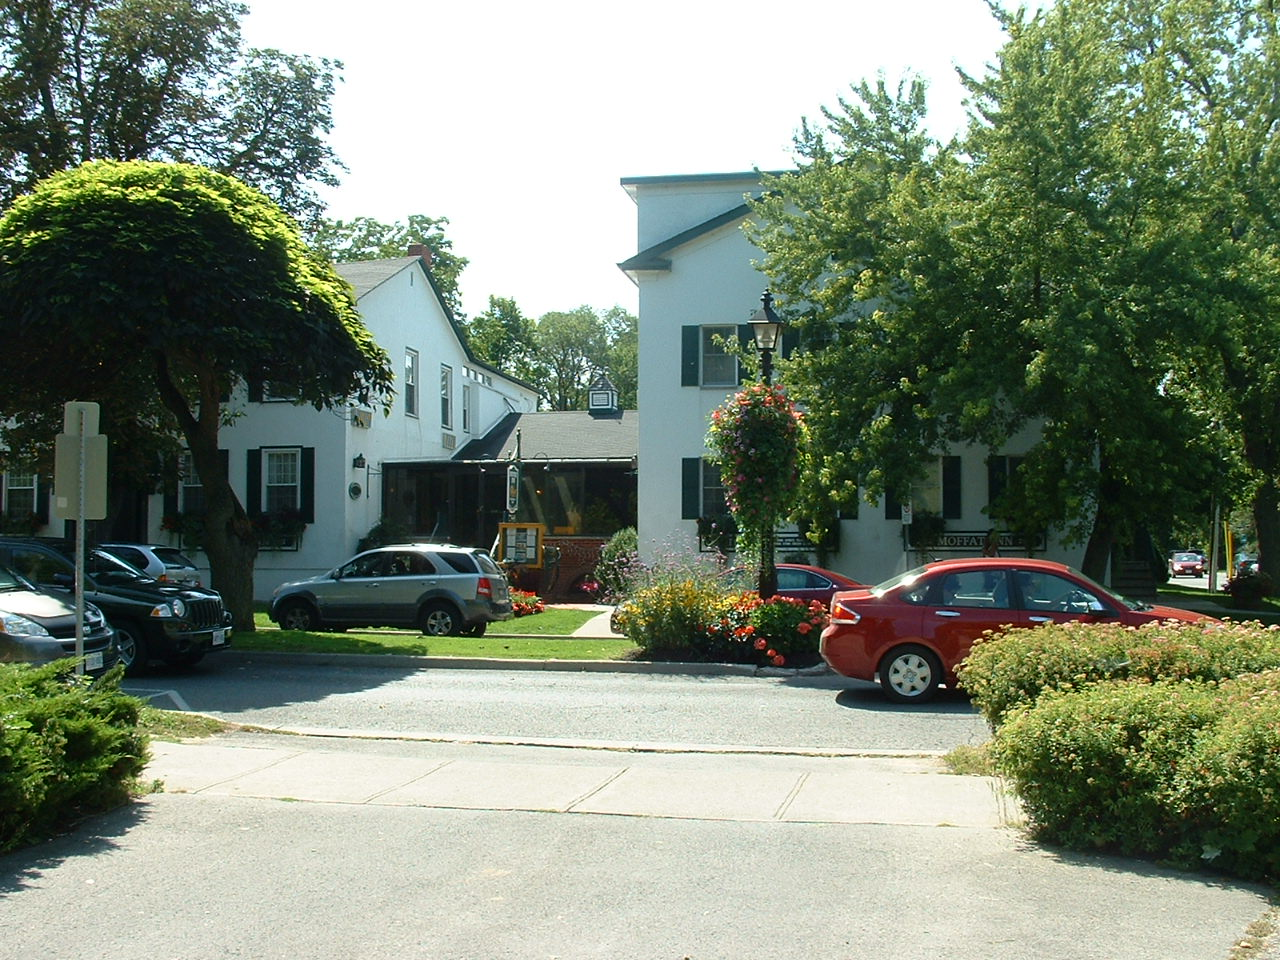 Moffat Inn, Niagara-on-the-Lake